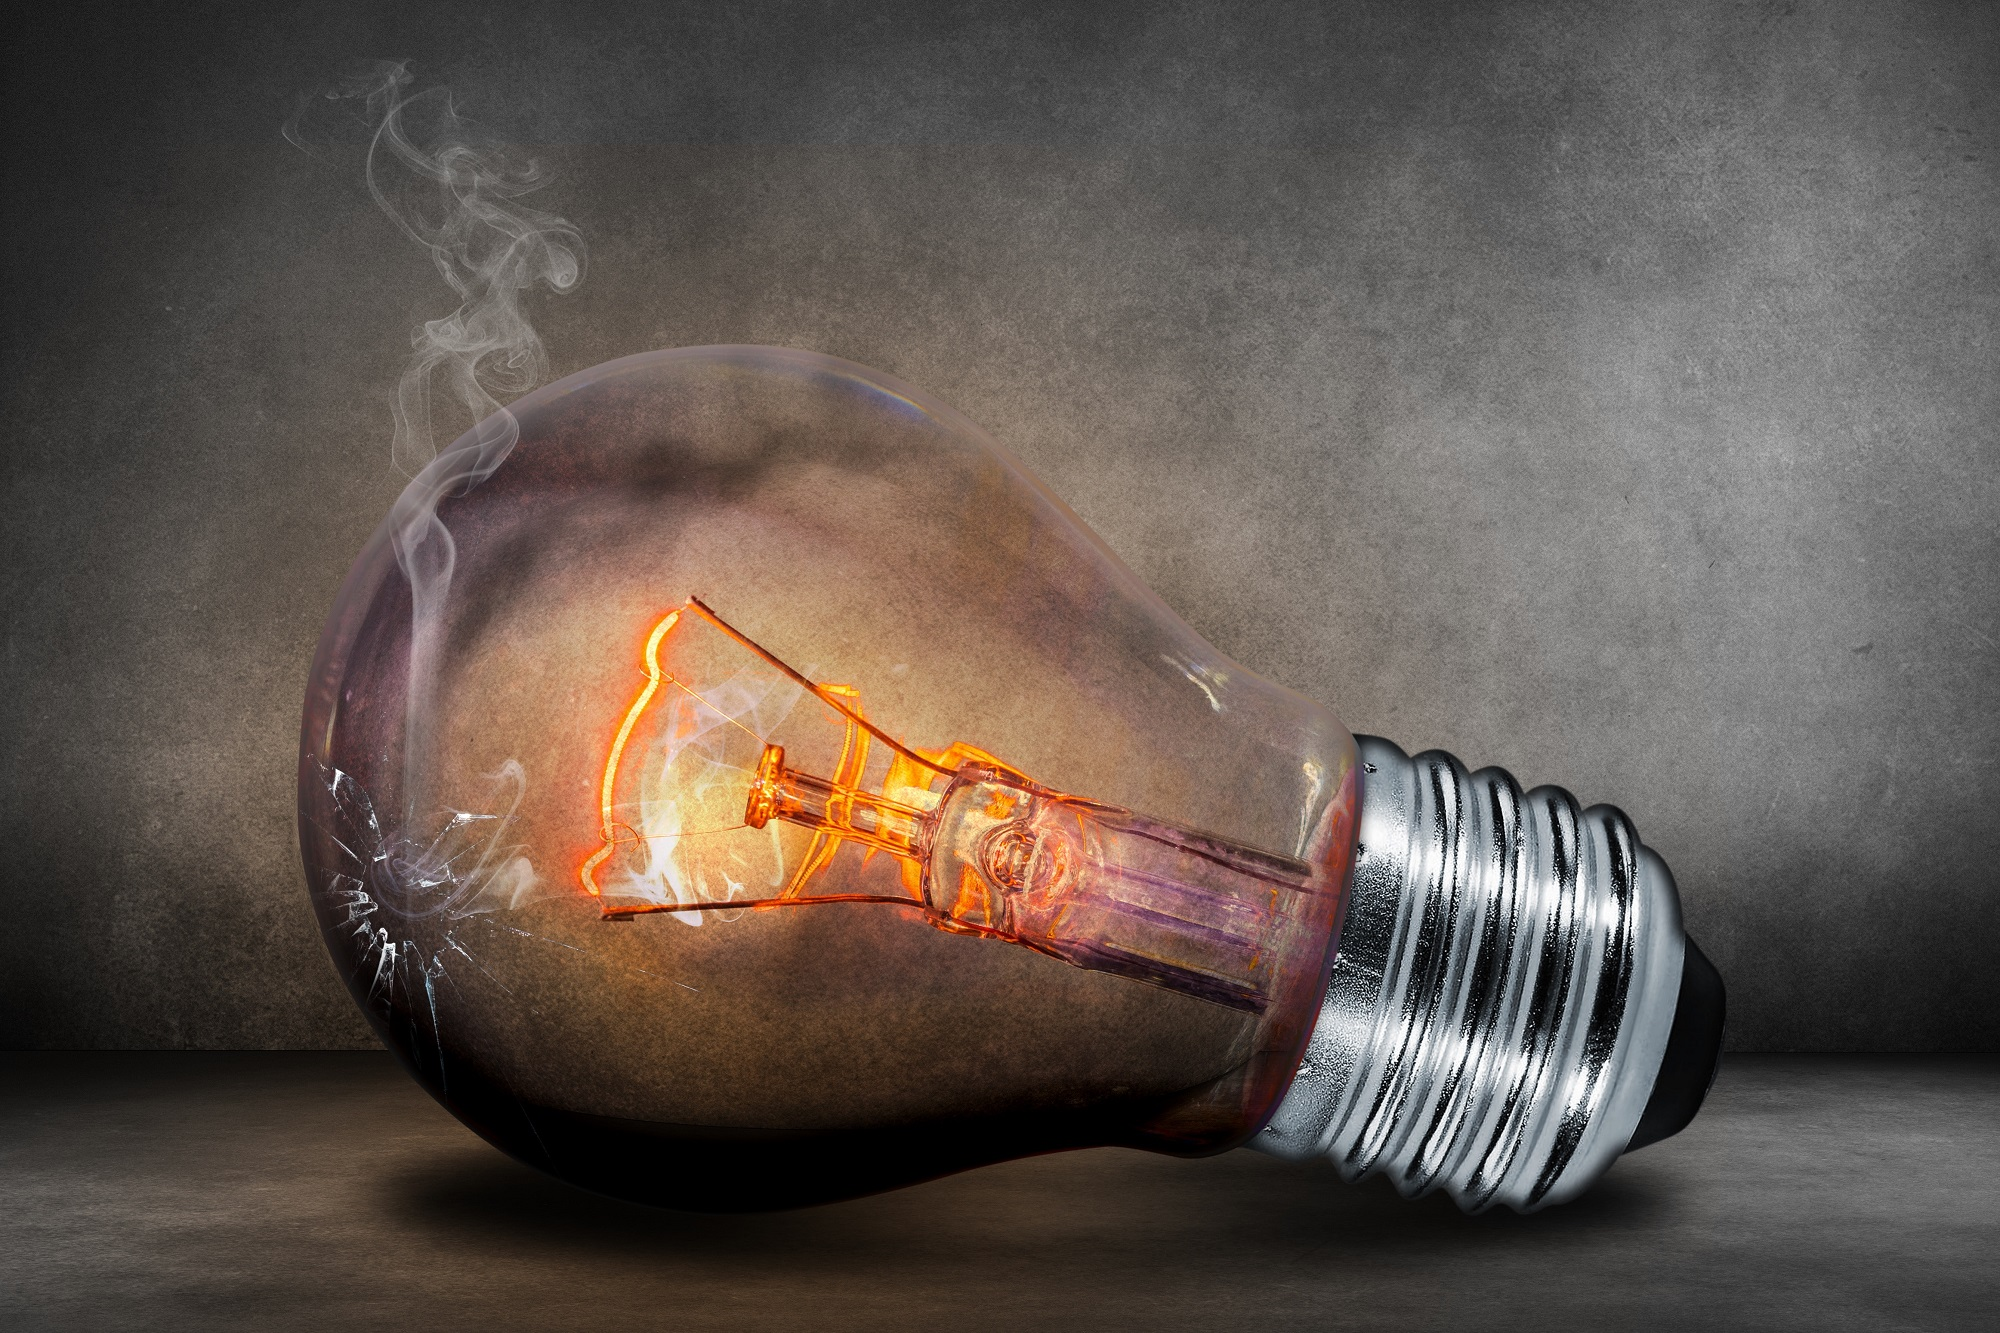 If the bulb is broken, get a new one!